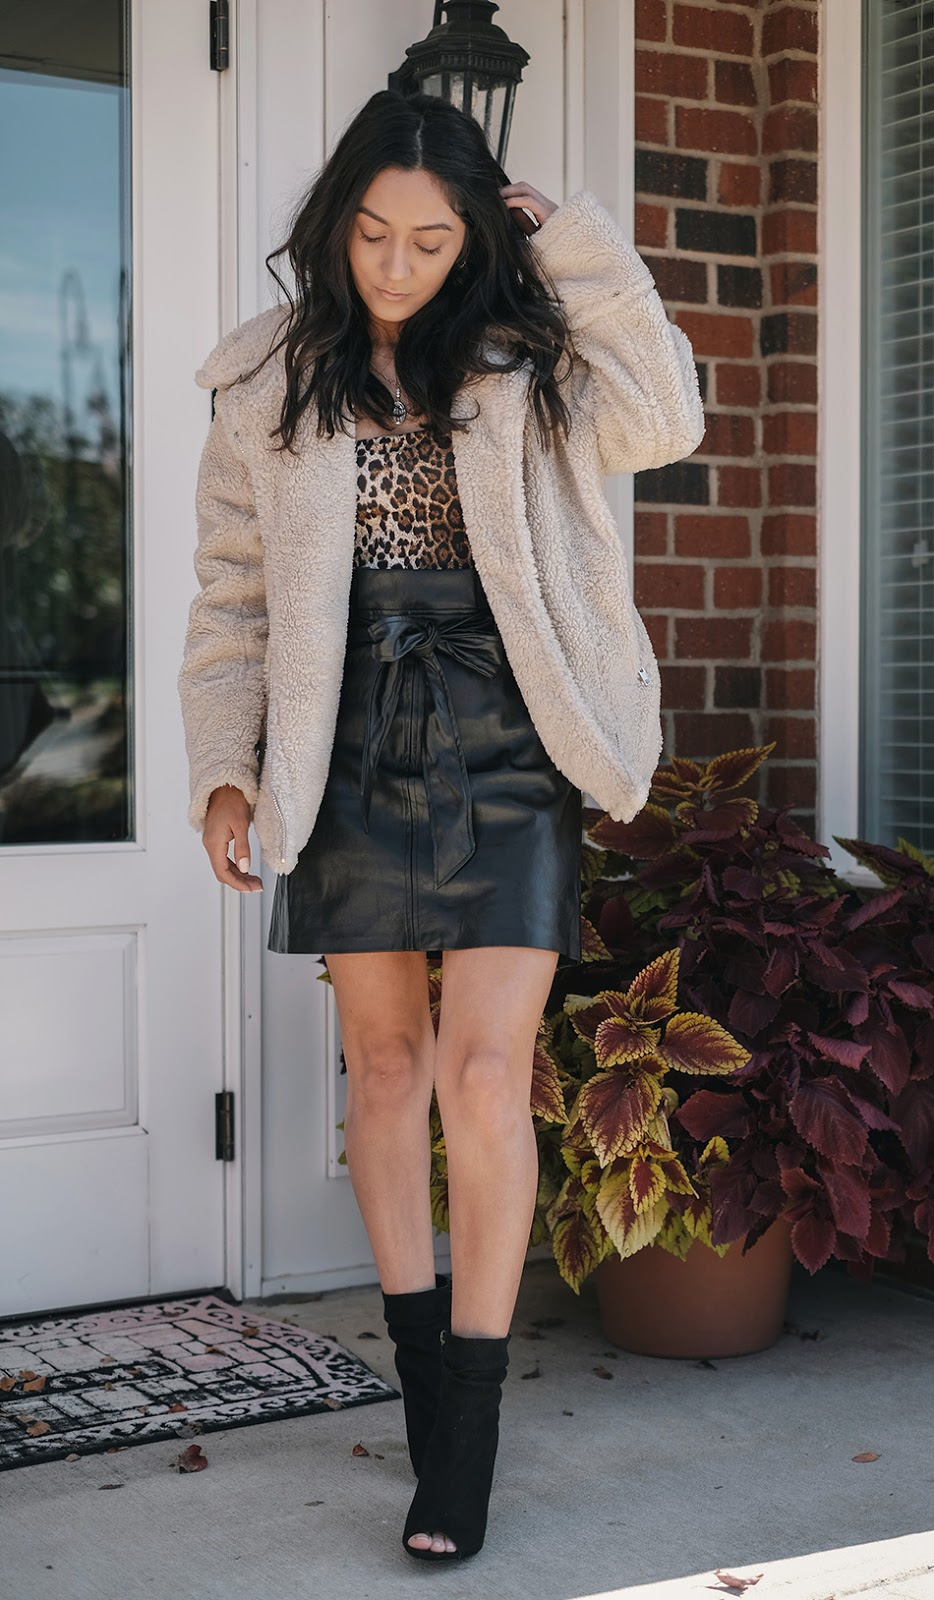 how to style sherpa jackets winter cute, how to style leopard bodysuit outfits, how to style scrunched booties